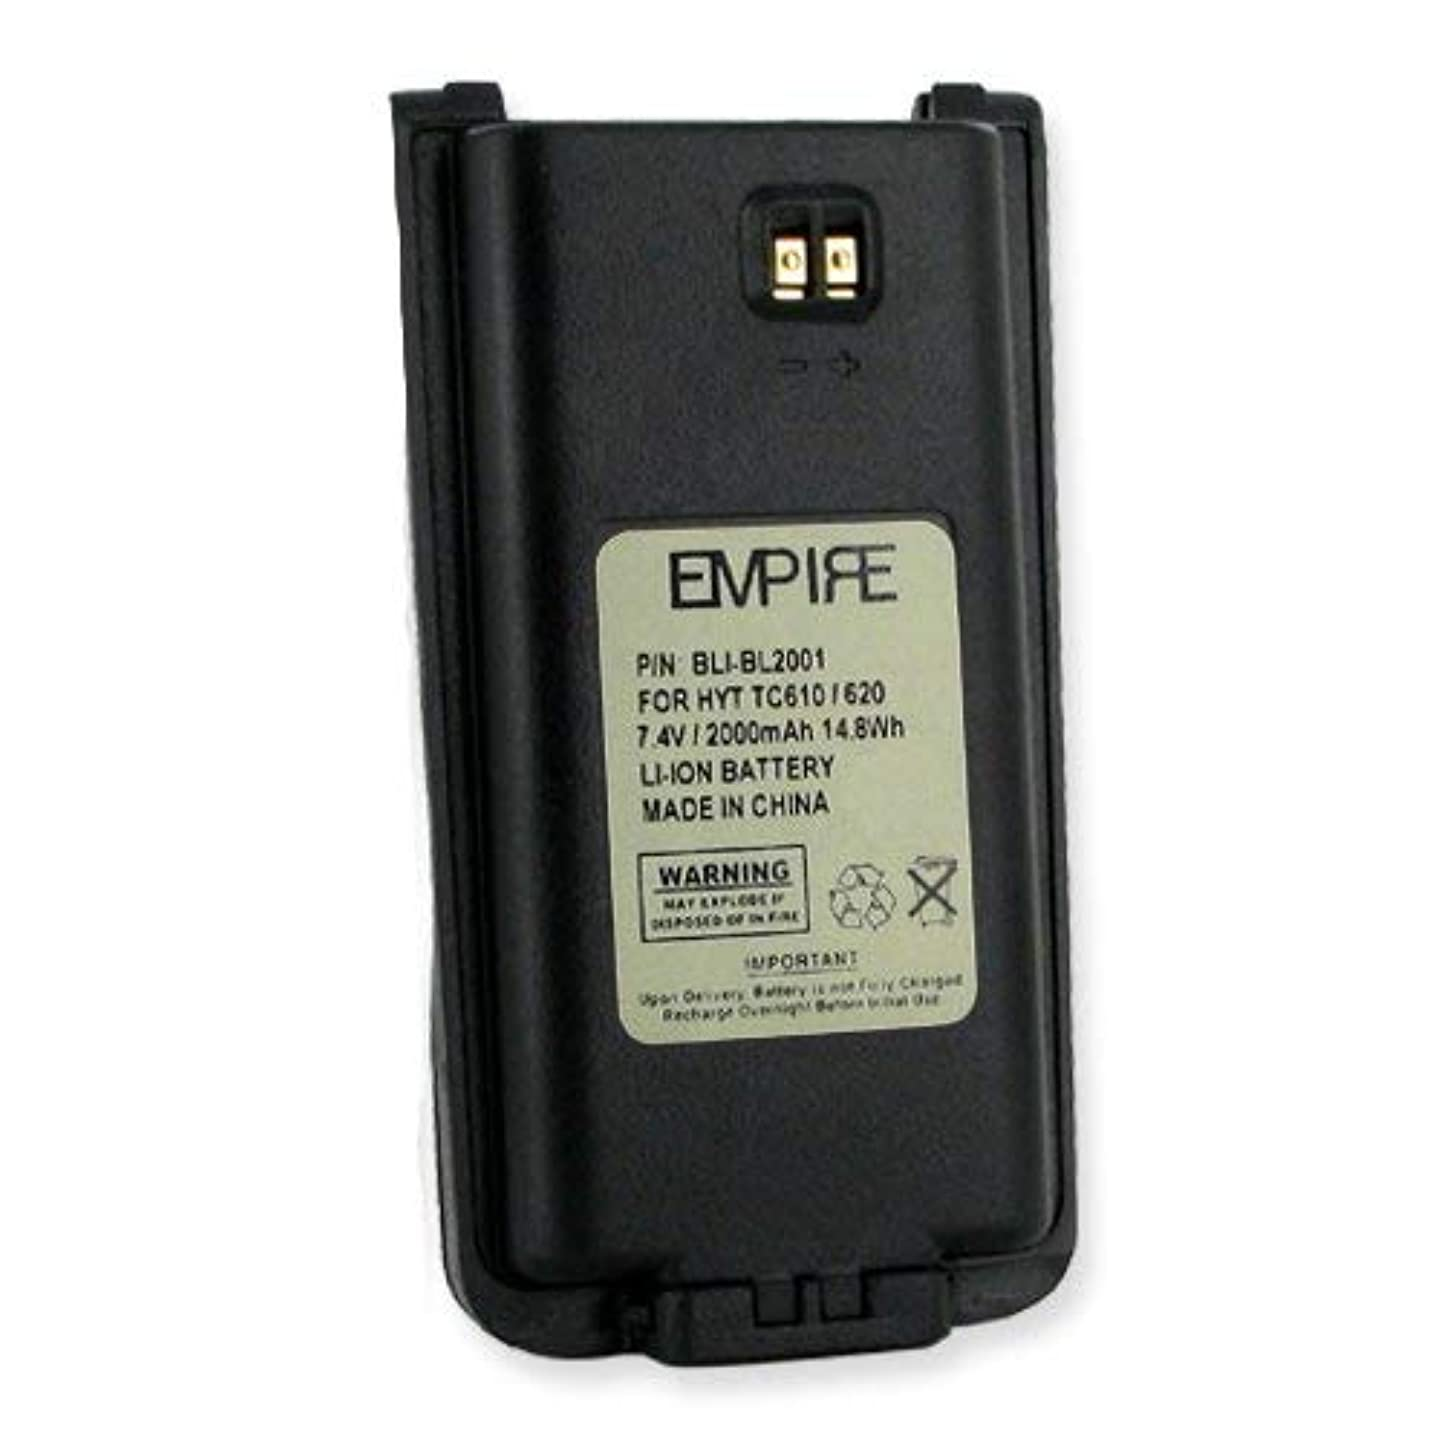 HYT BL2001 2-Way Radio Battery (Li-Ion 2000mAh) Rechargeable Battery - Replacement for HYT BL2001